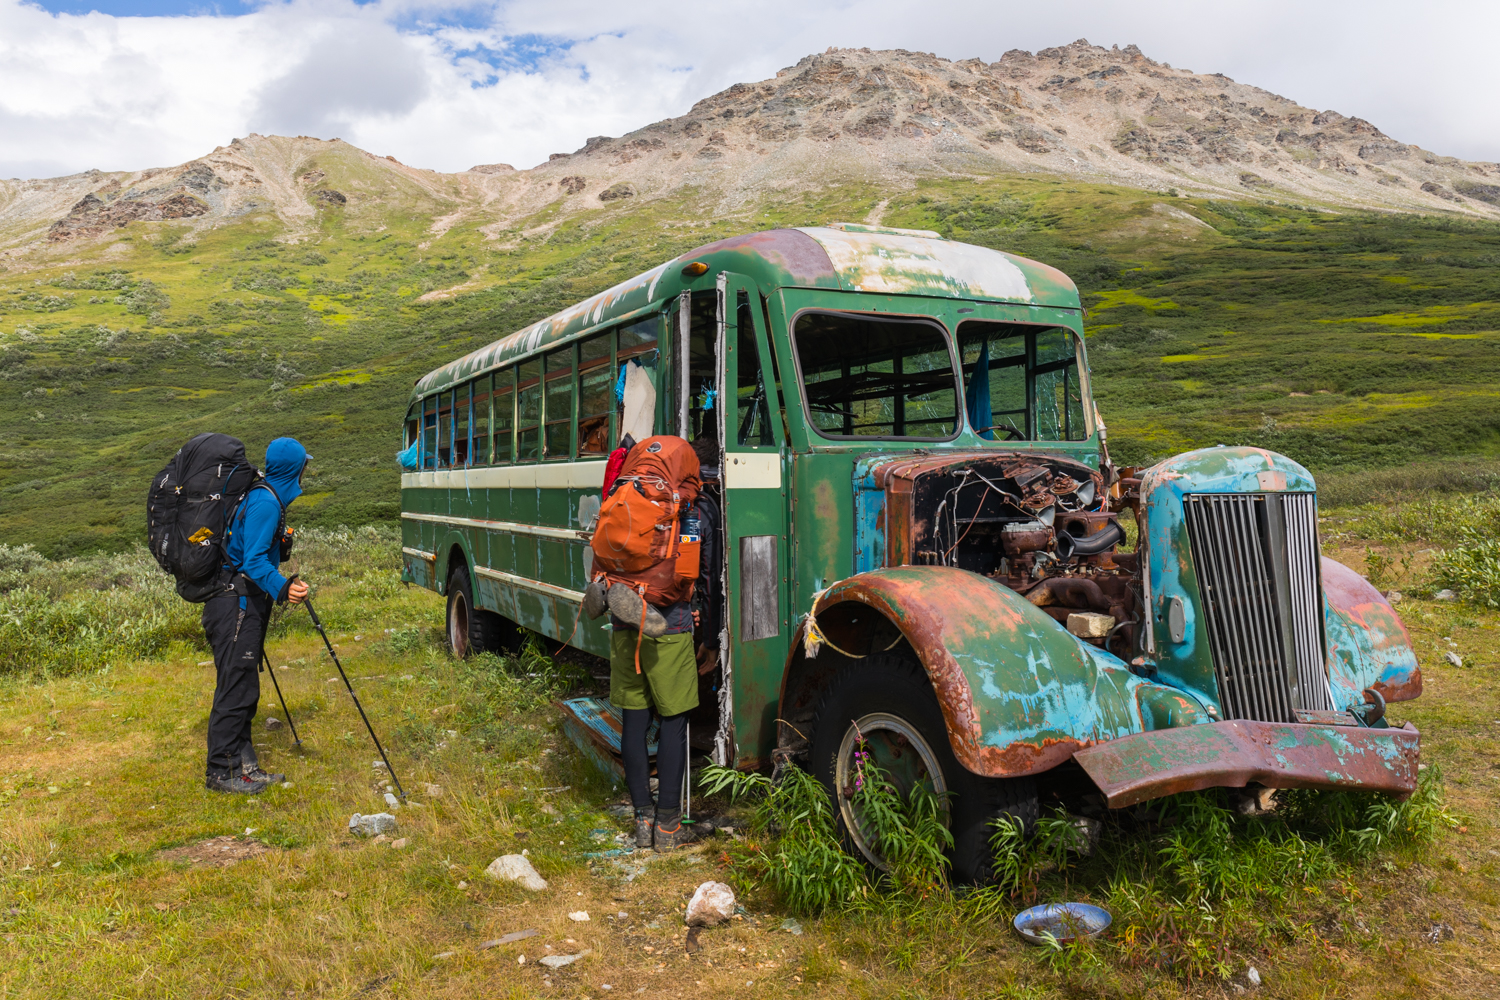 Healy Creek Bus (not the Stampede Trail Bus)